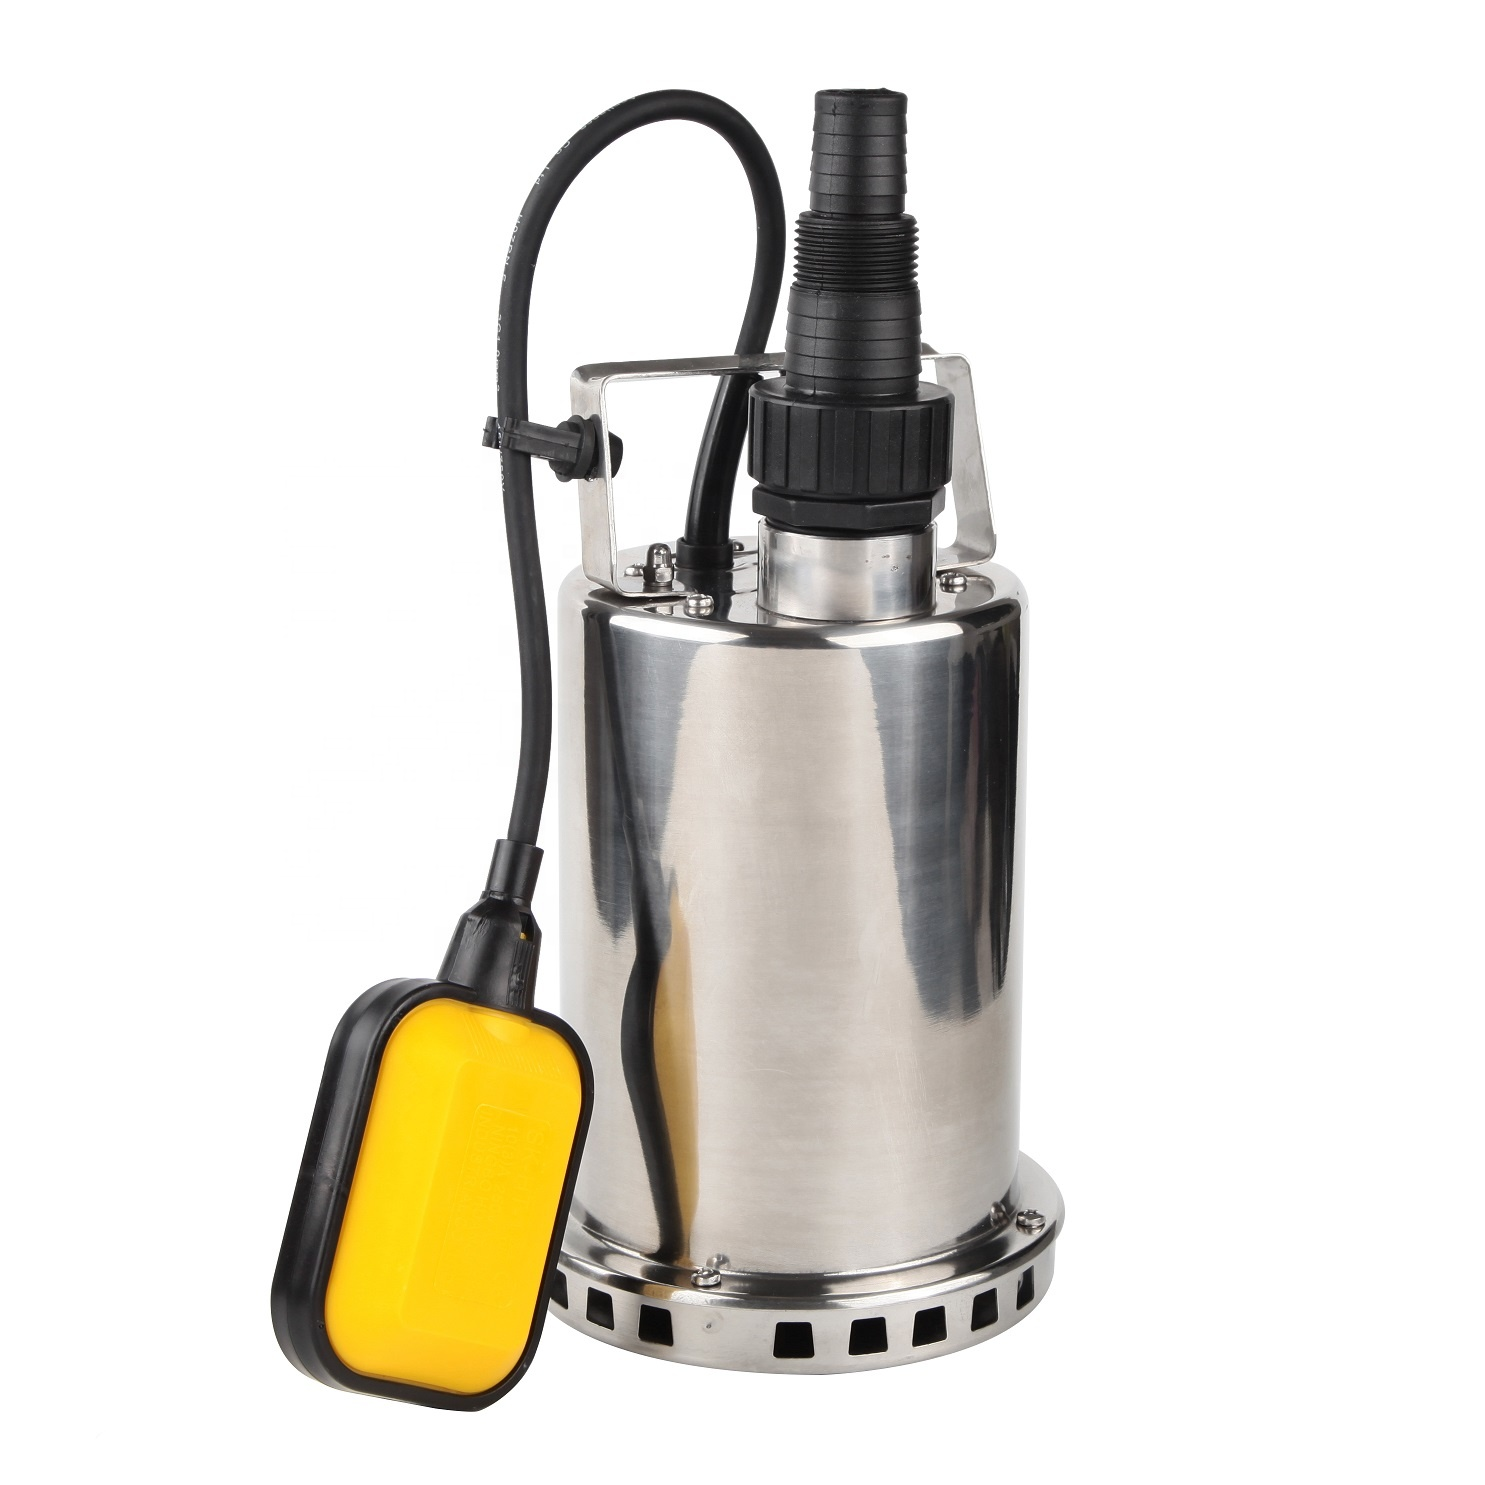 400w Portable Heavy Duty Stainless Steel Inox Auto Submersible Electric Clean Water Pump